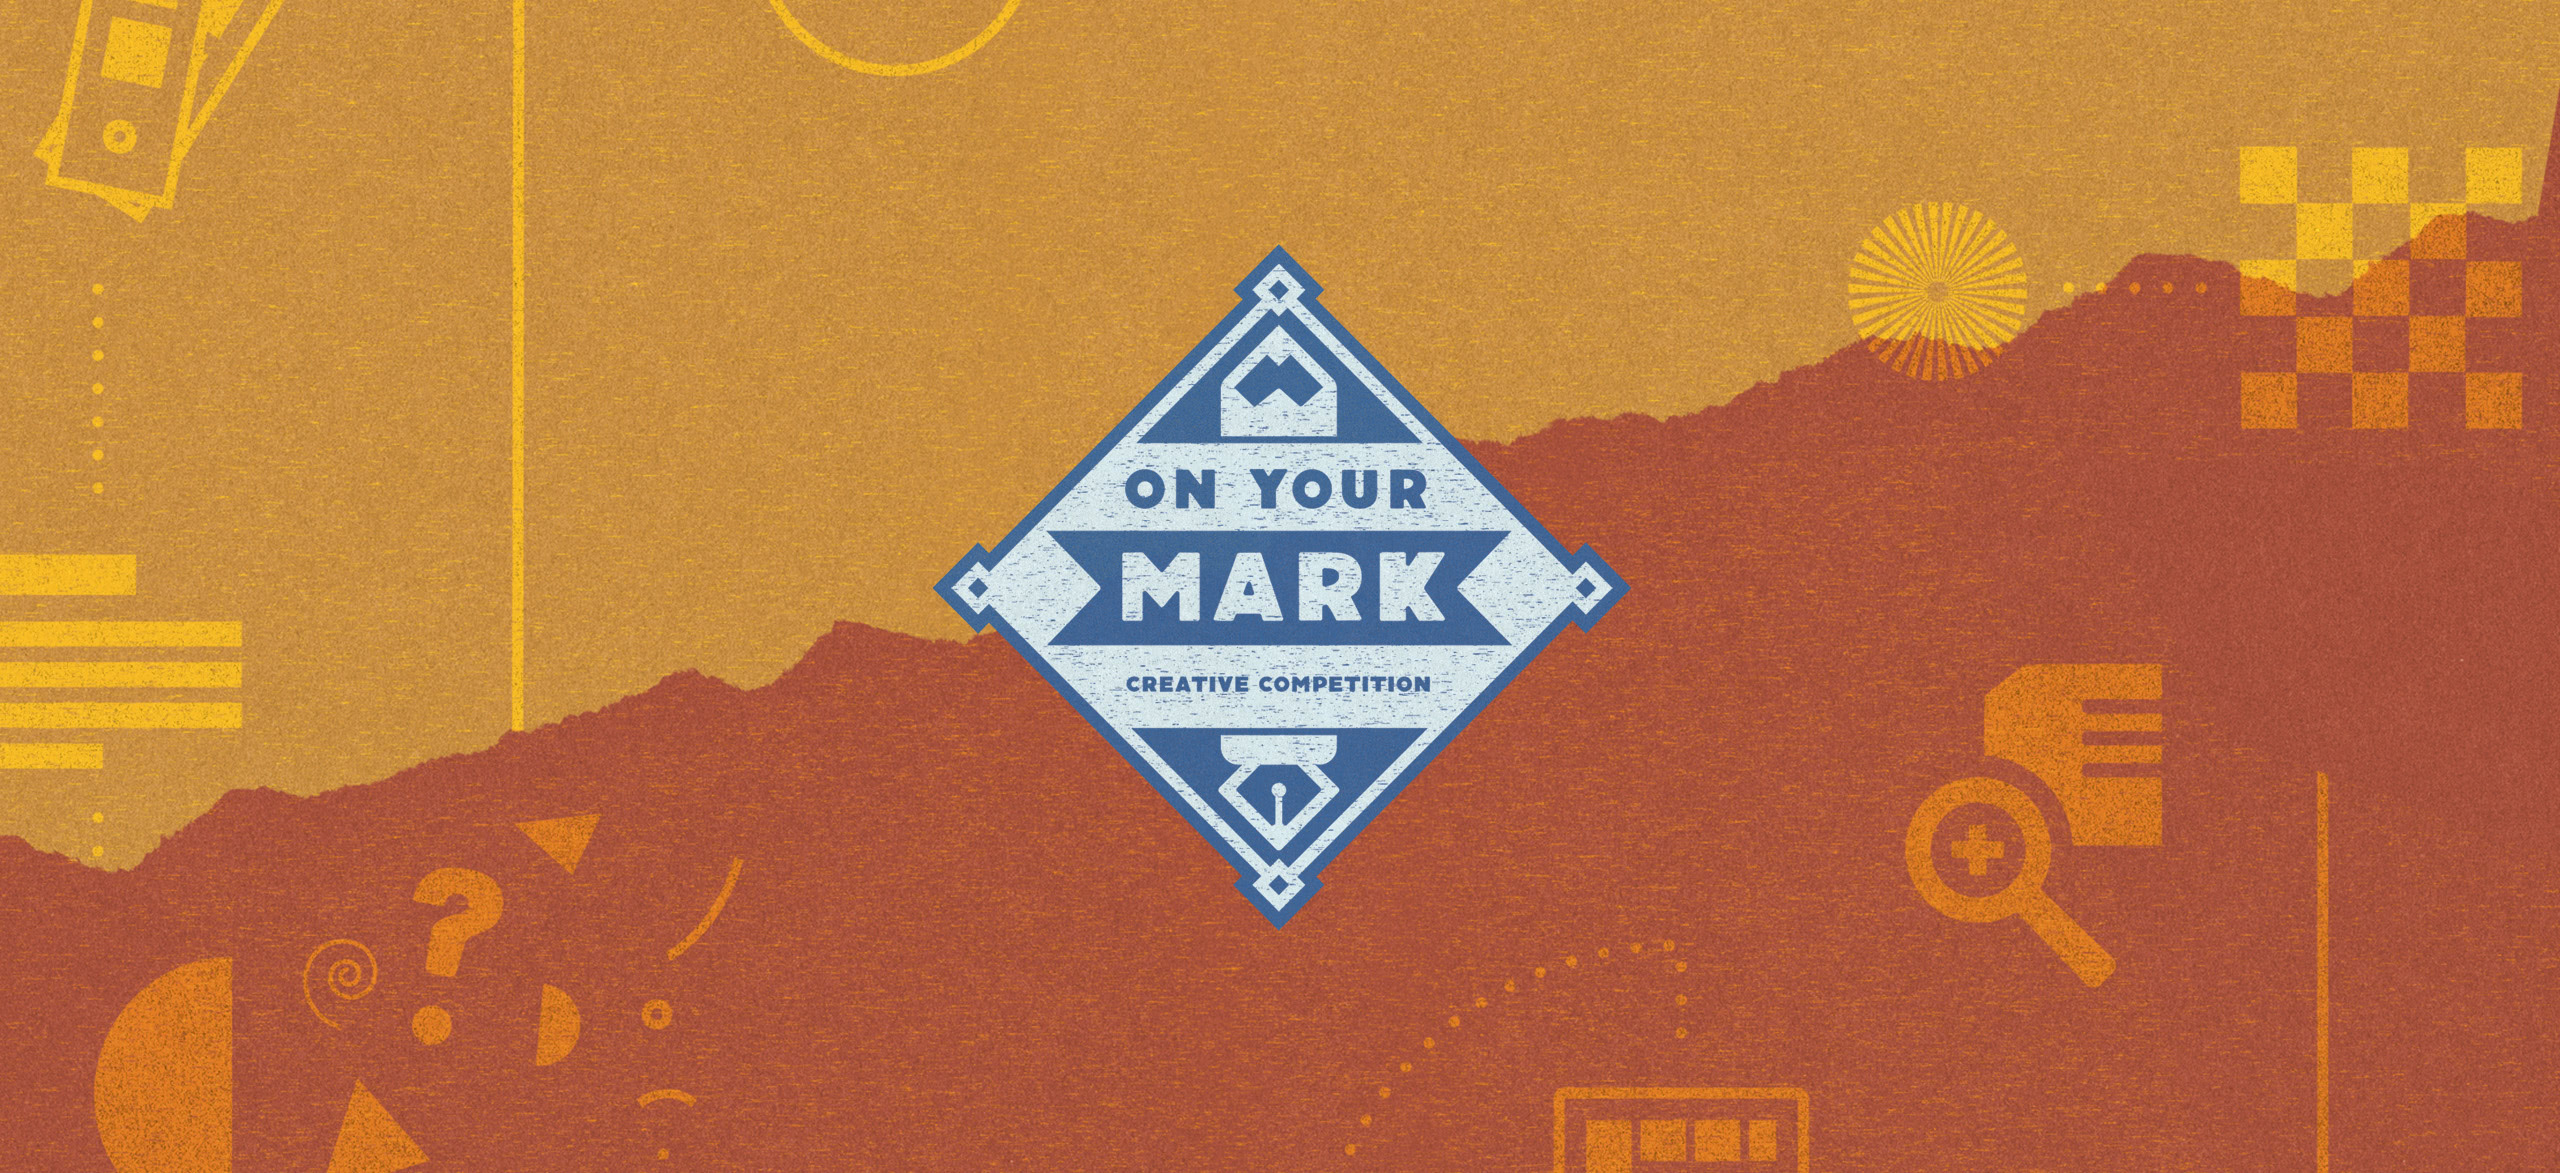 On Your Mark event logo